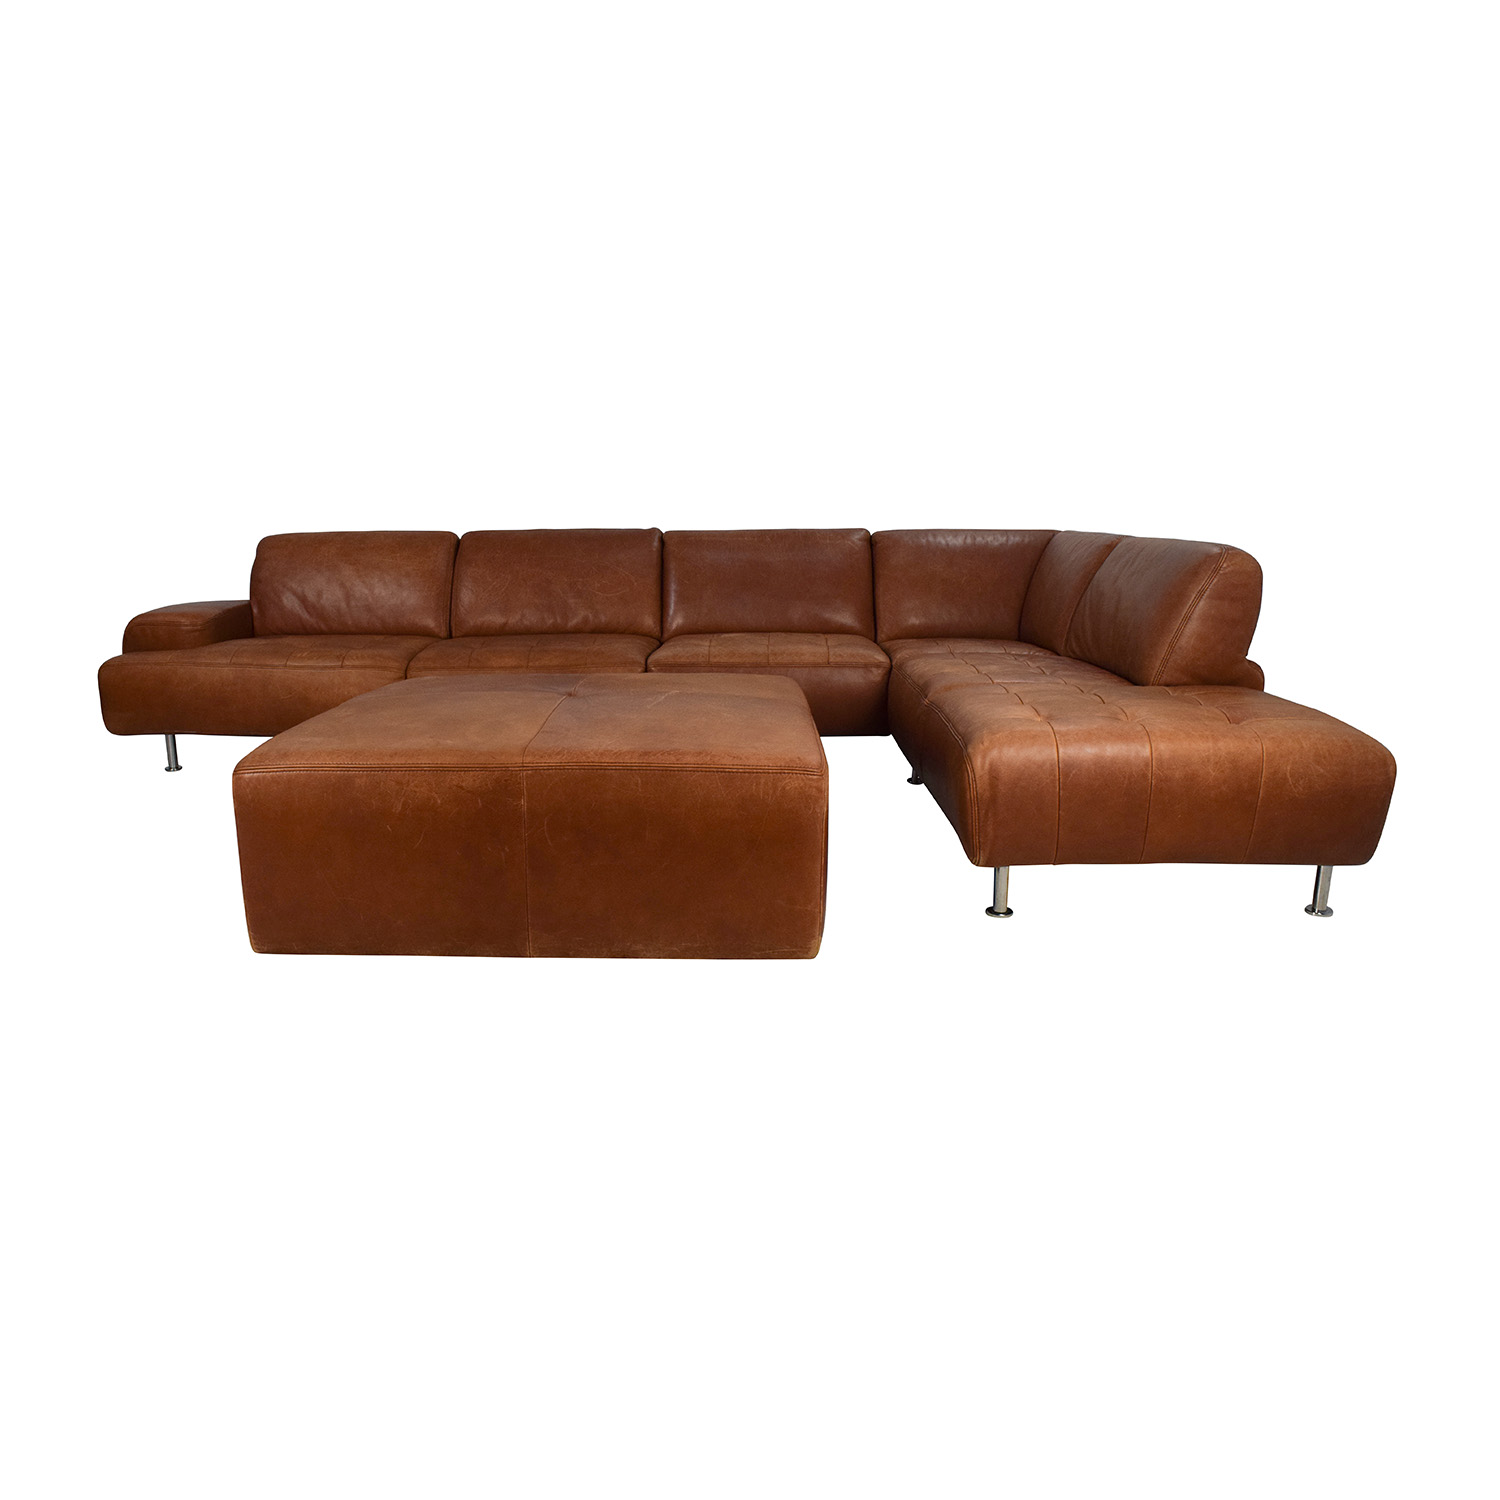 W. Schillig W. Schillig Leather Sectional And